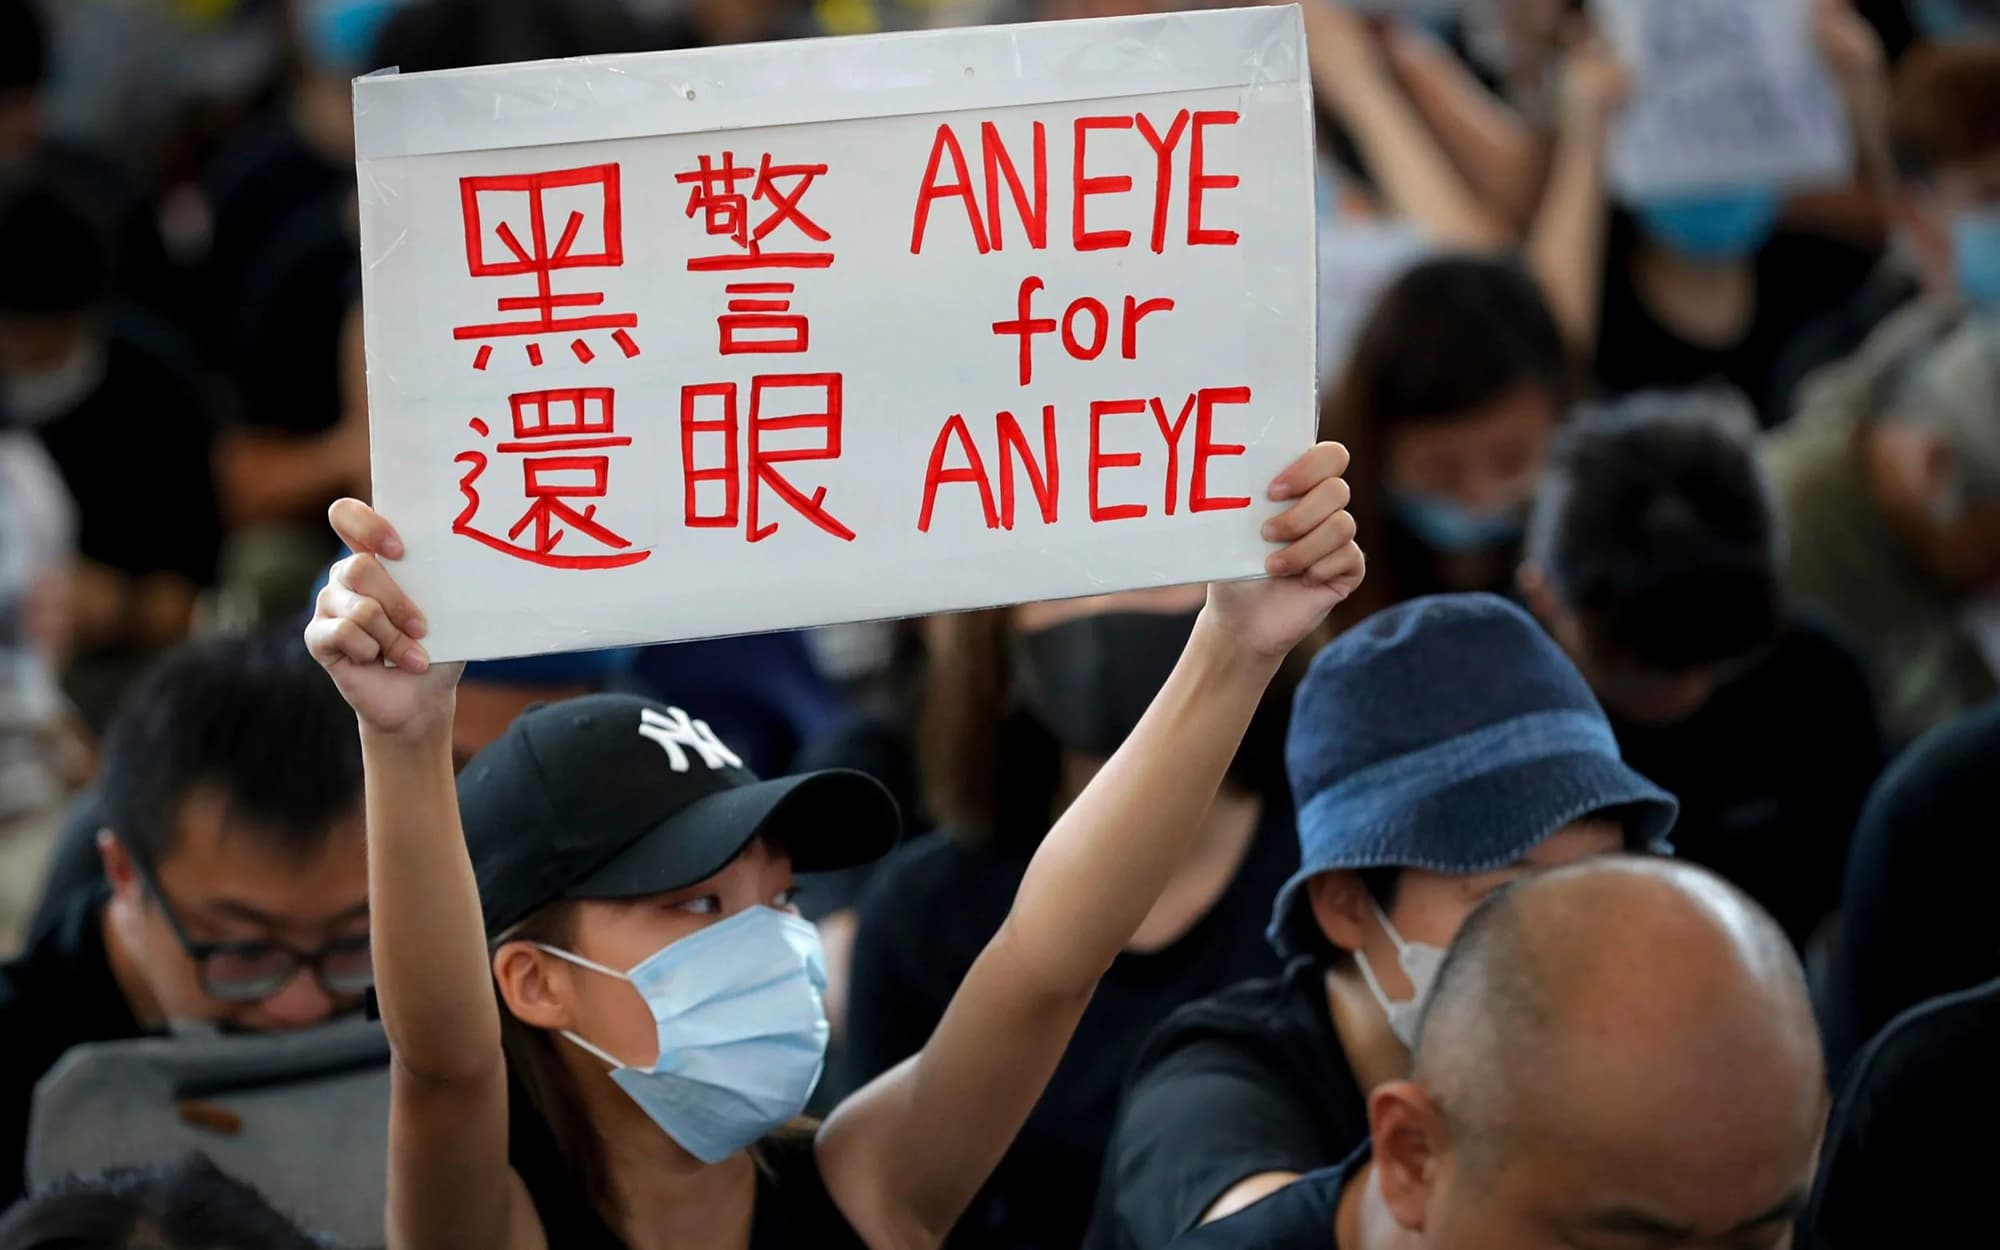 In pictures: Hong Kong protesters face crucial weekend test after airport setback